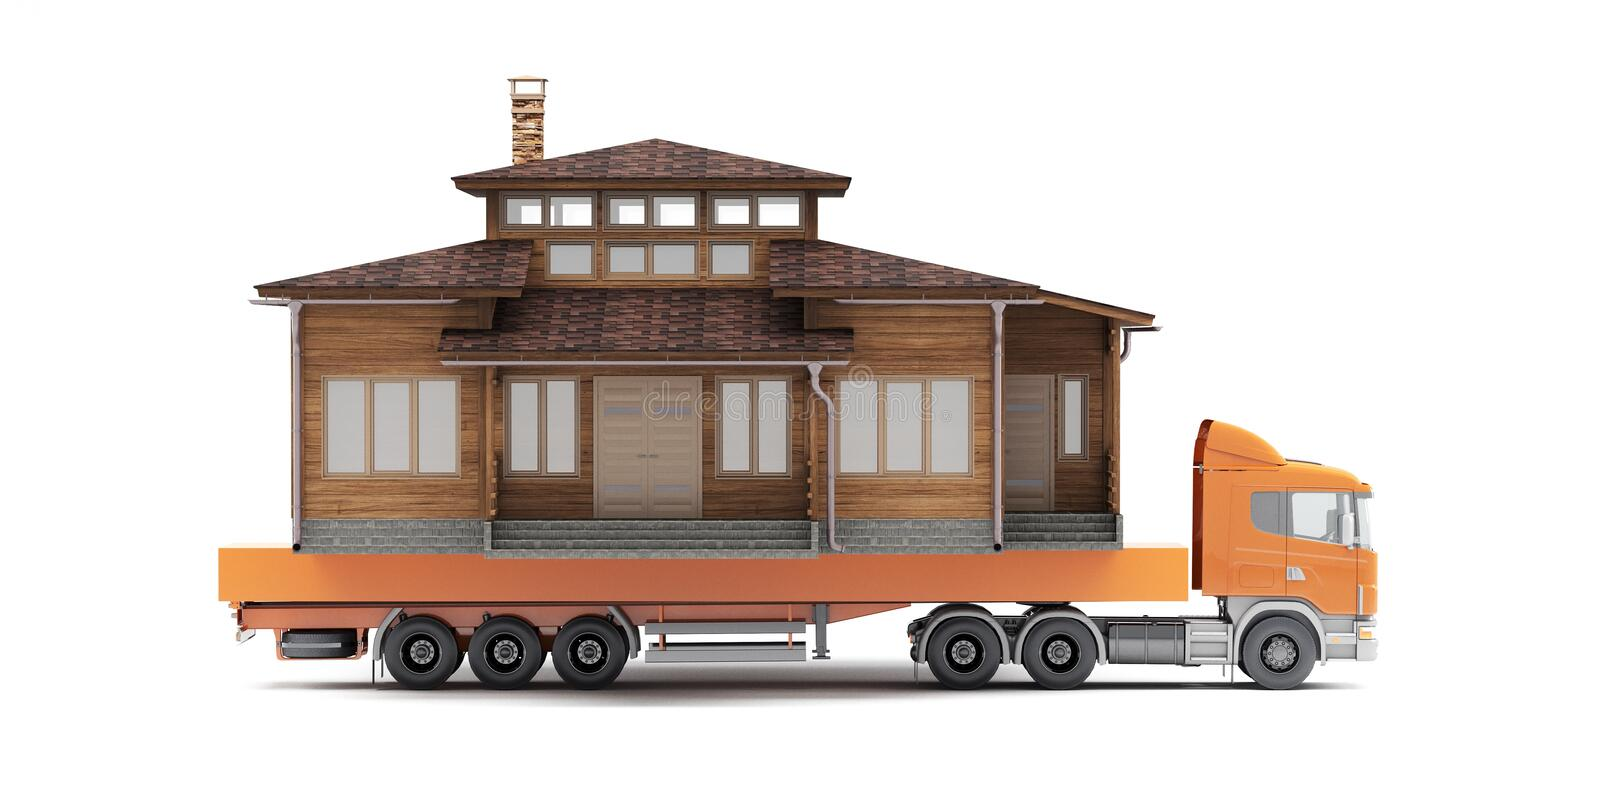 Moving the whole big house with a truck. Concept. 3d rendering stock illustration